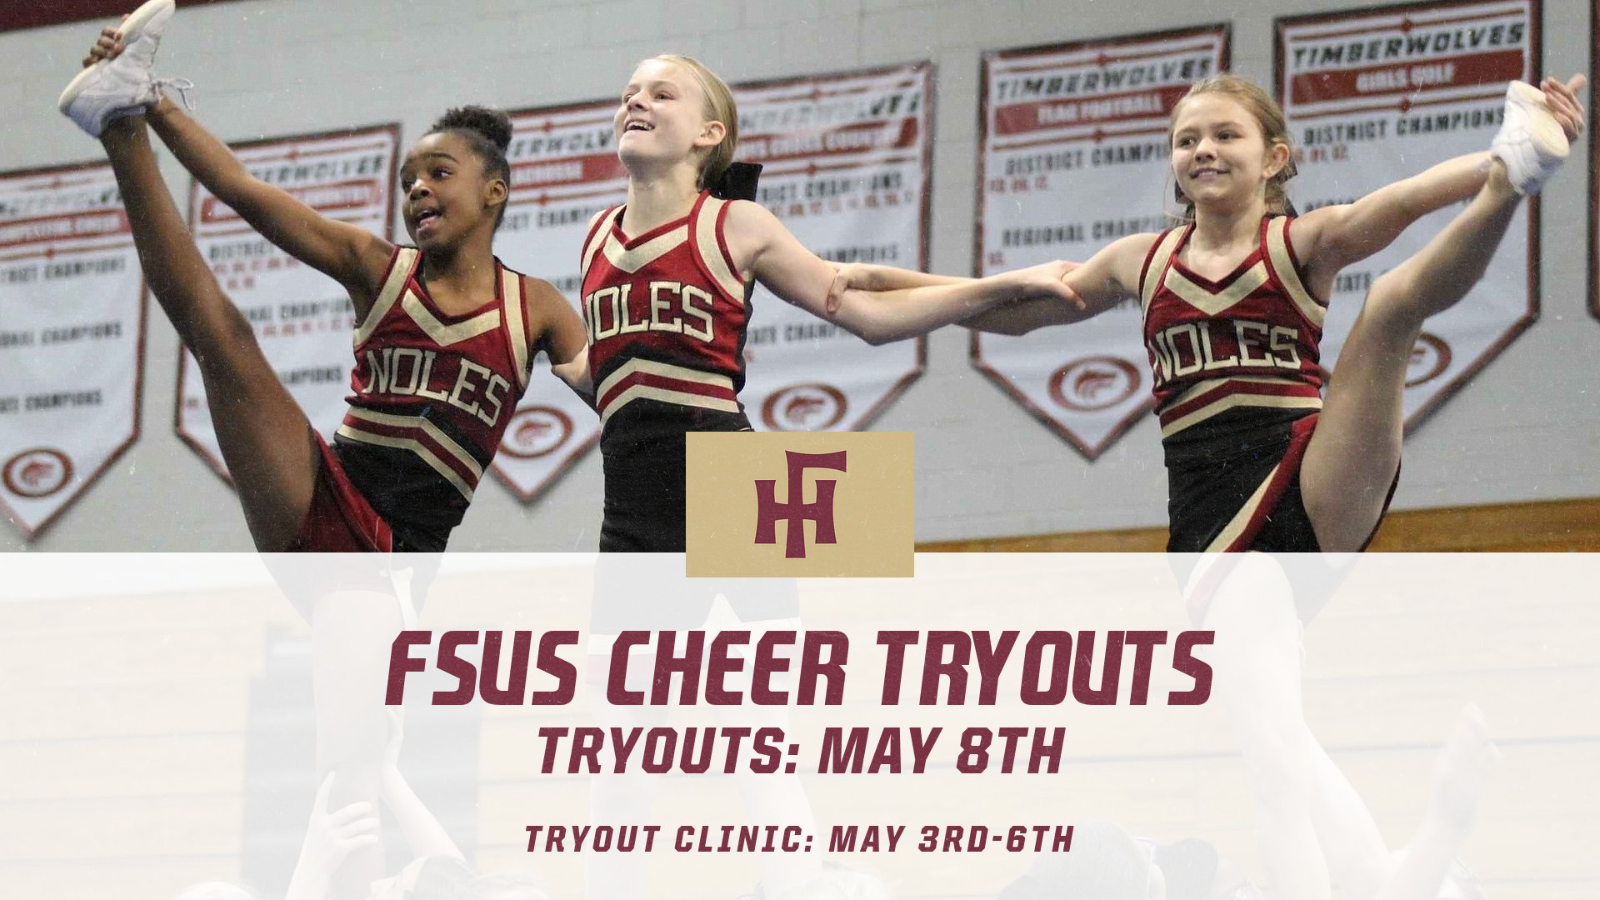 FSUS Announces Cheer Tryout Information